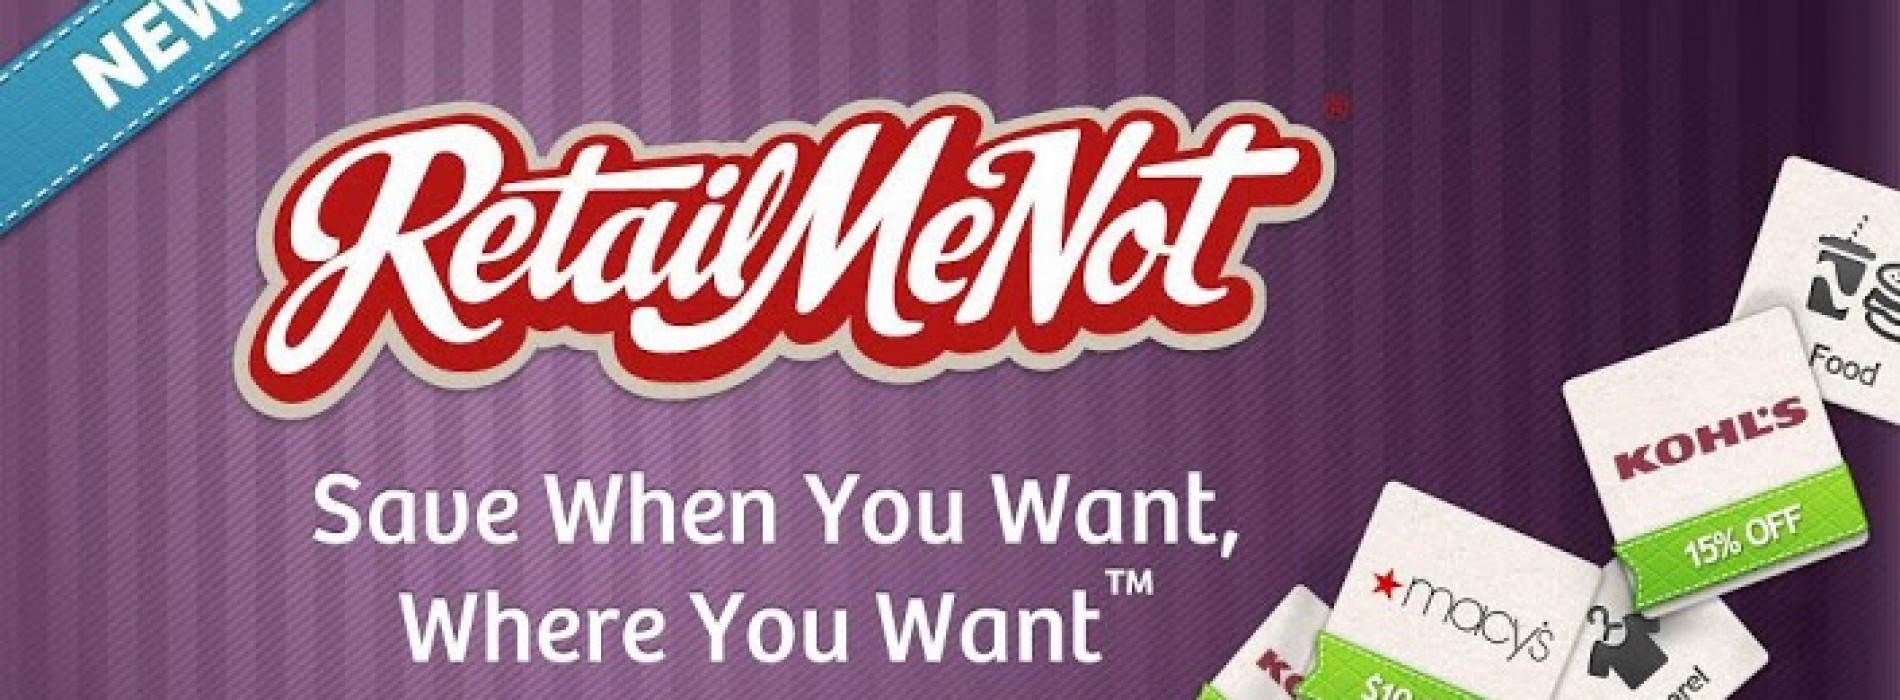 Updated RetailMeNot app includes location-based deals